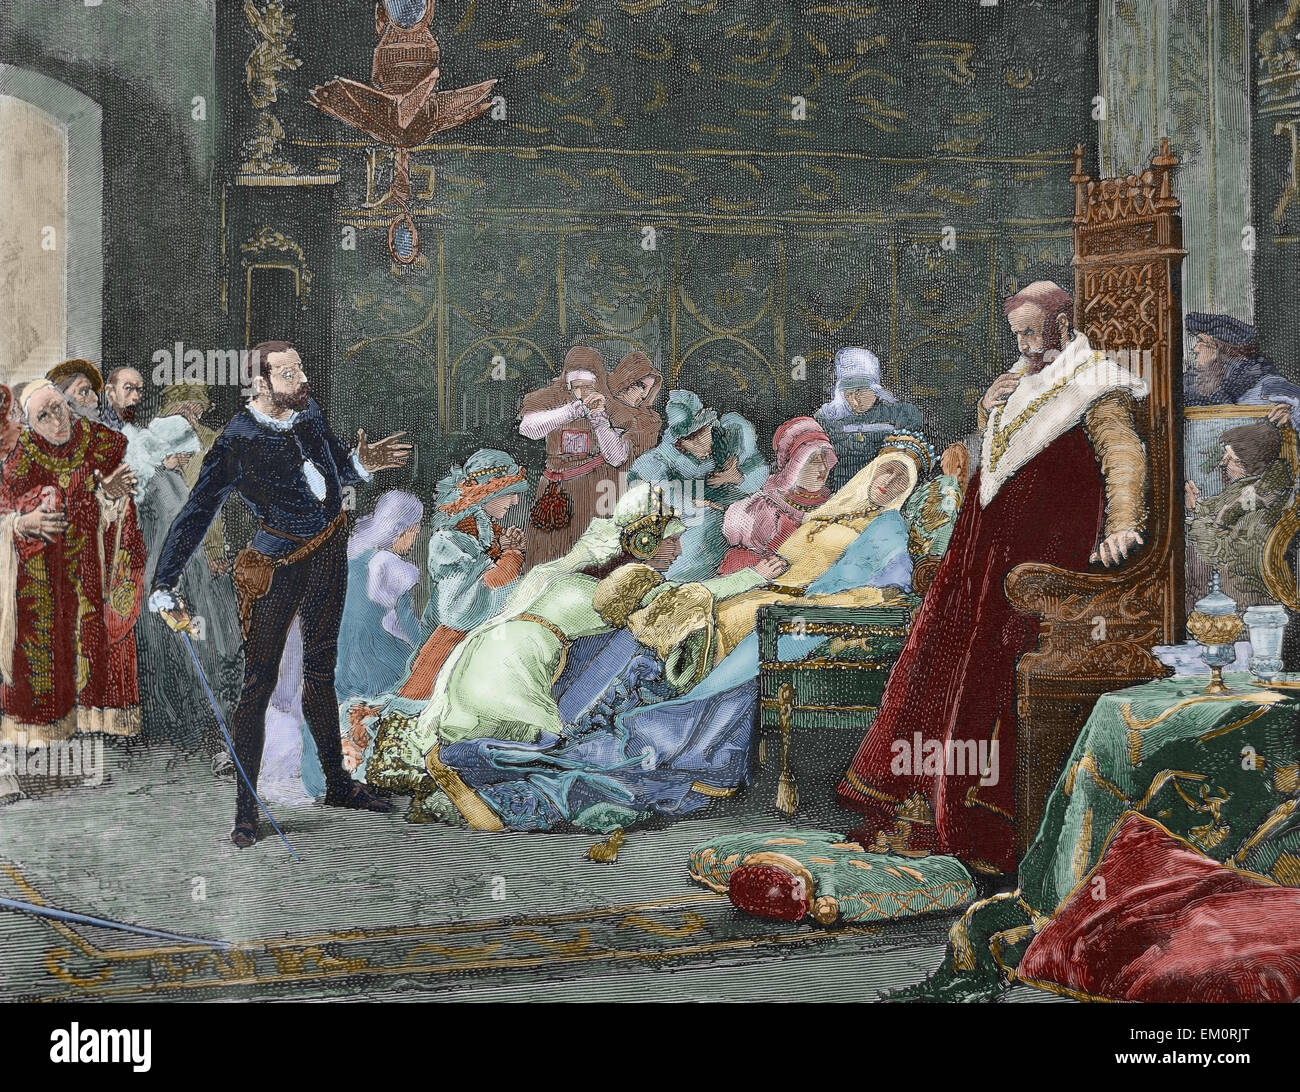 William Shakespeare (1564-1616). English writer. Hamlet. Queen Gertrude dies poisoned after drinking to the health - Stock Image